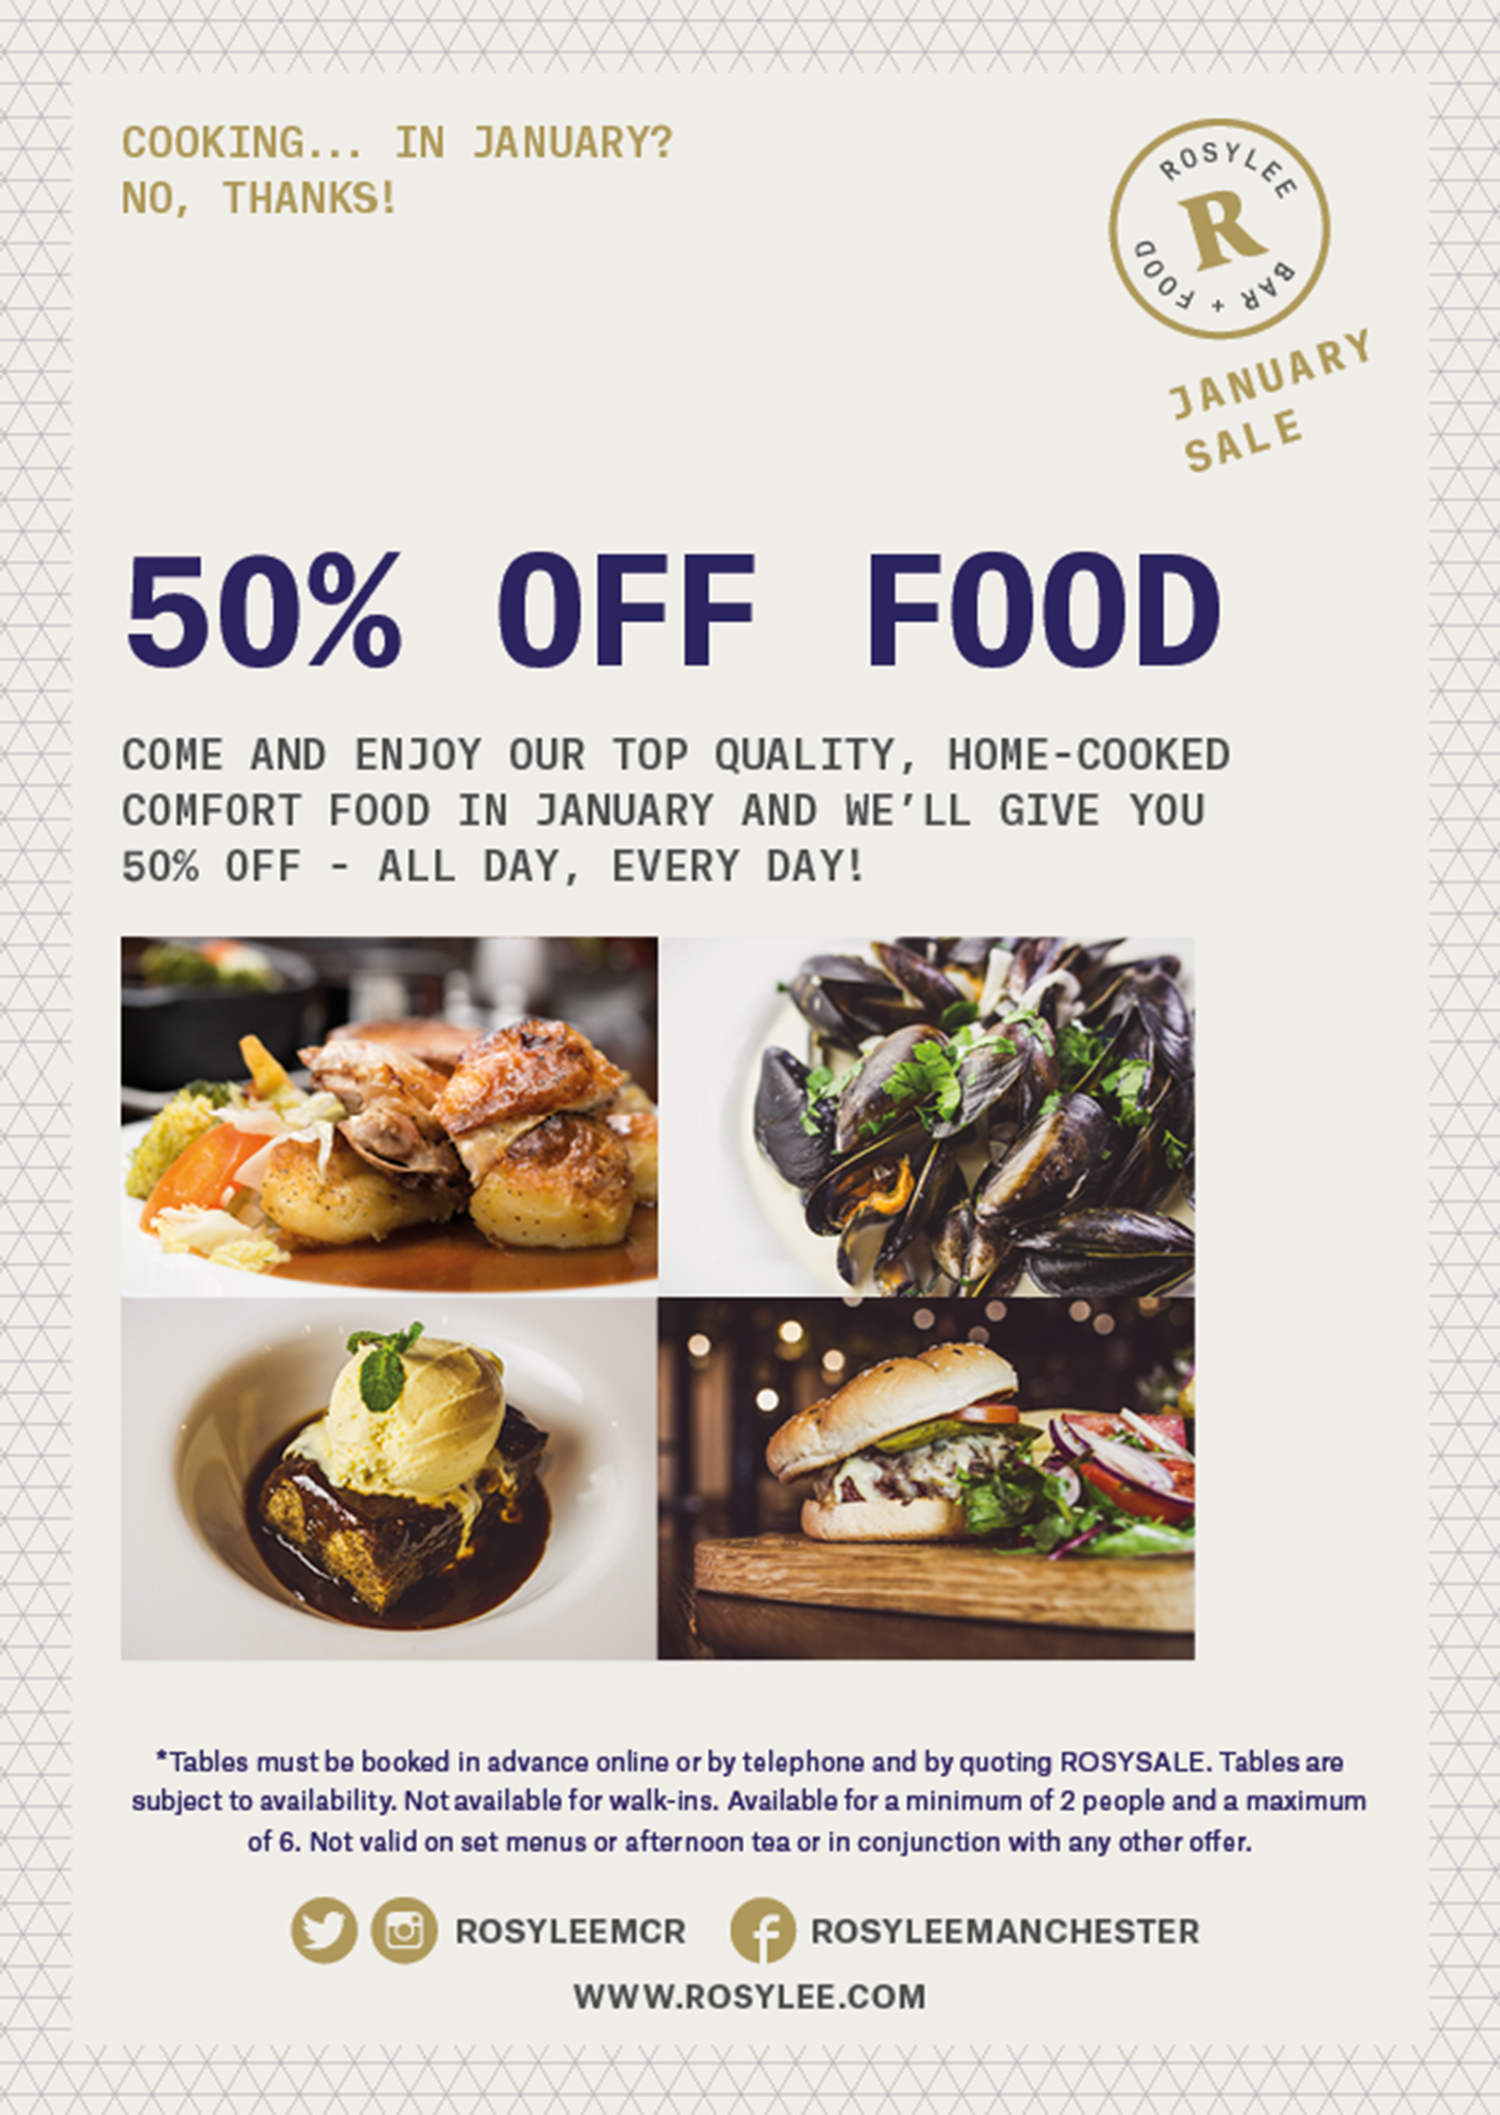 Rosylee 50% off food